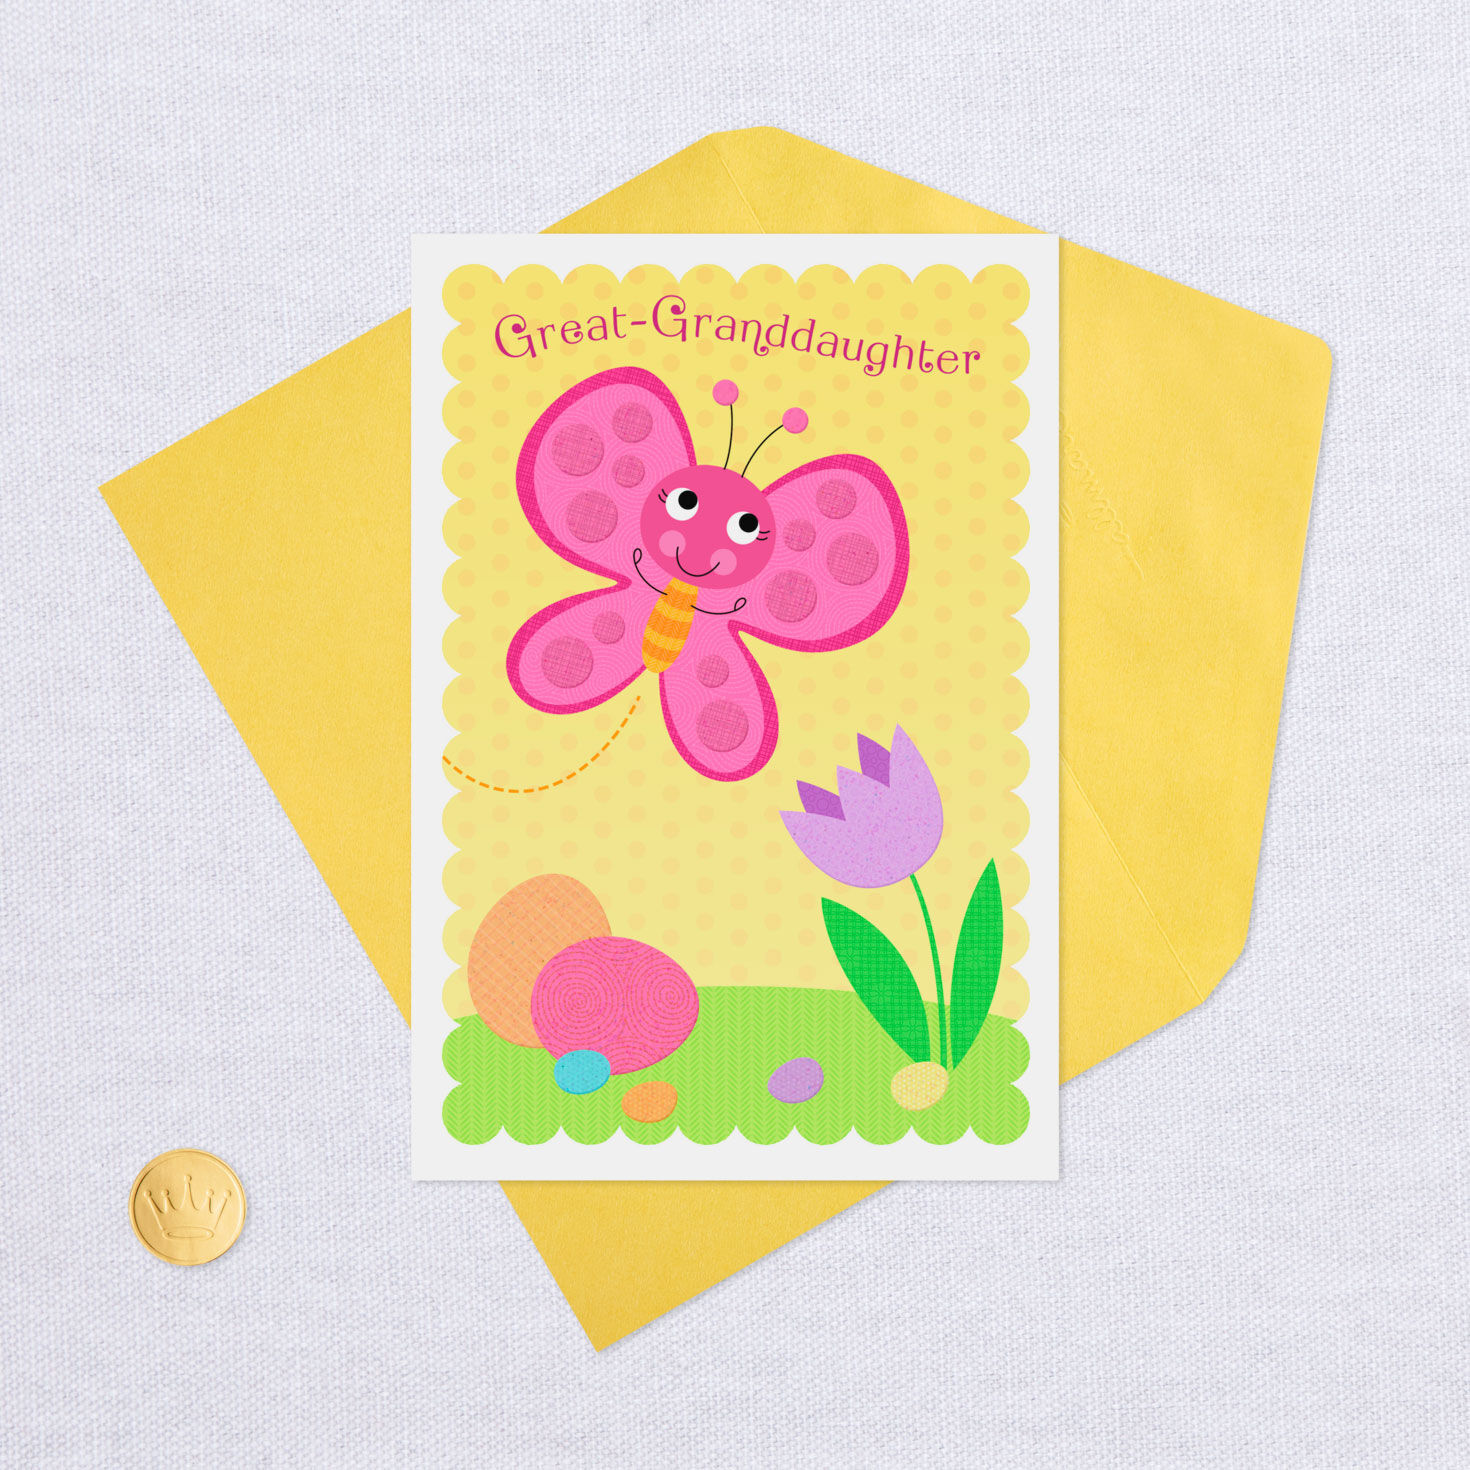 Lovely Easter Cards Granddaughter /& Great Granddaughter with Envelope No 2 NEW